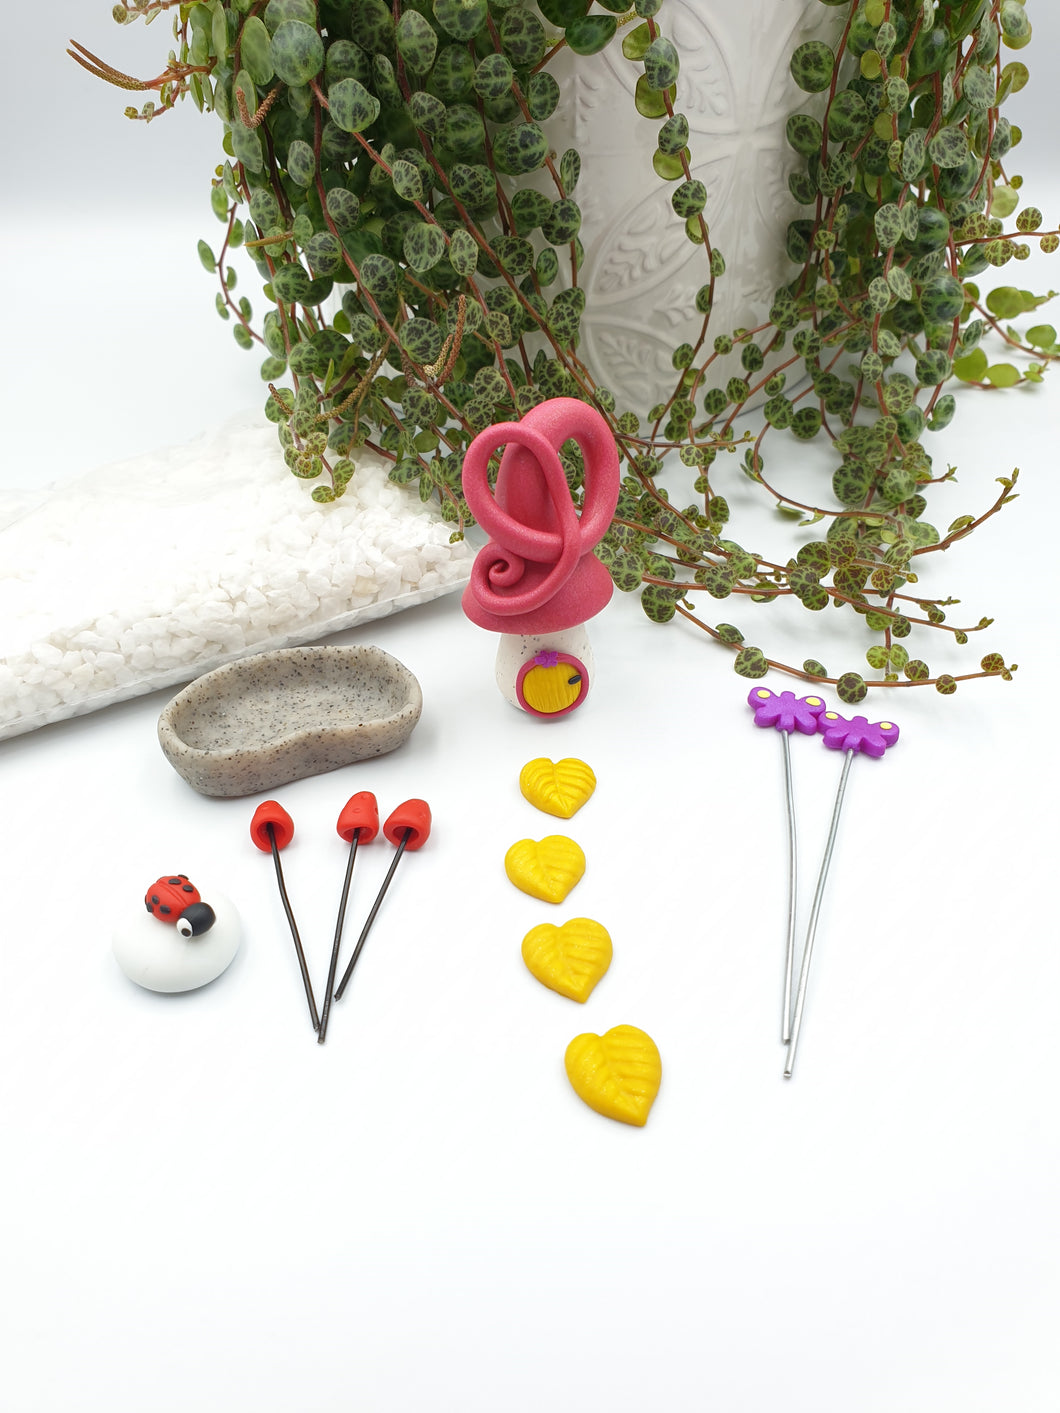 Miniature garden starter kit - shimmery hot pink